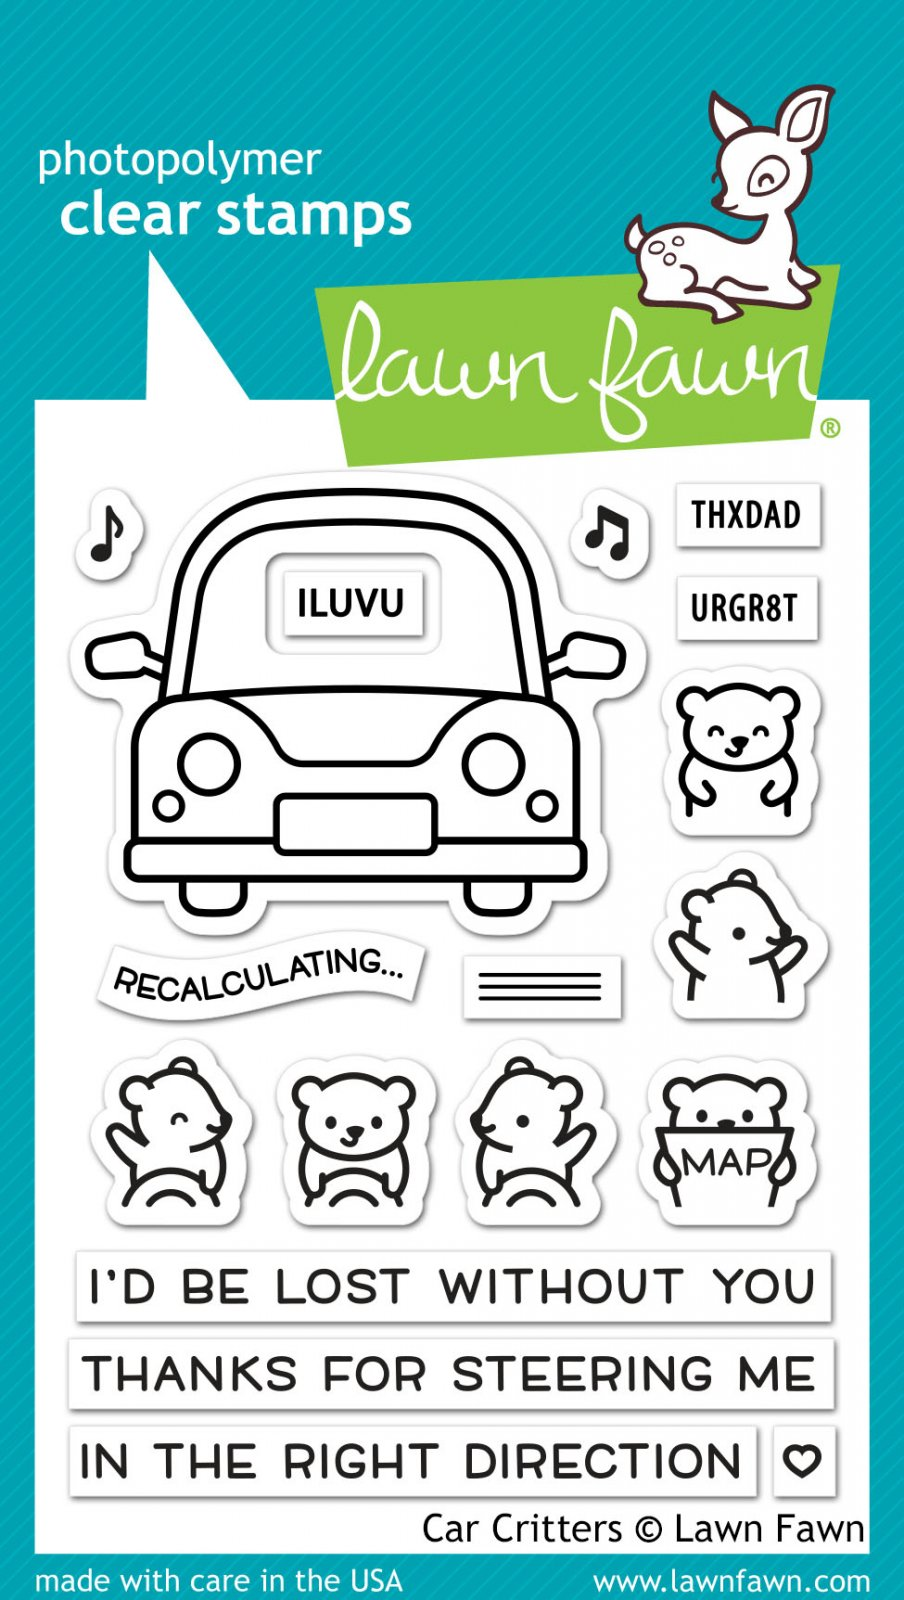 Lawn Fawn Stamps - Car Critters